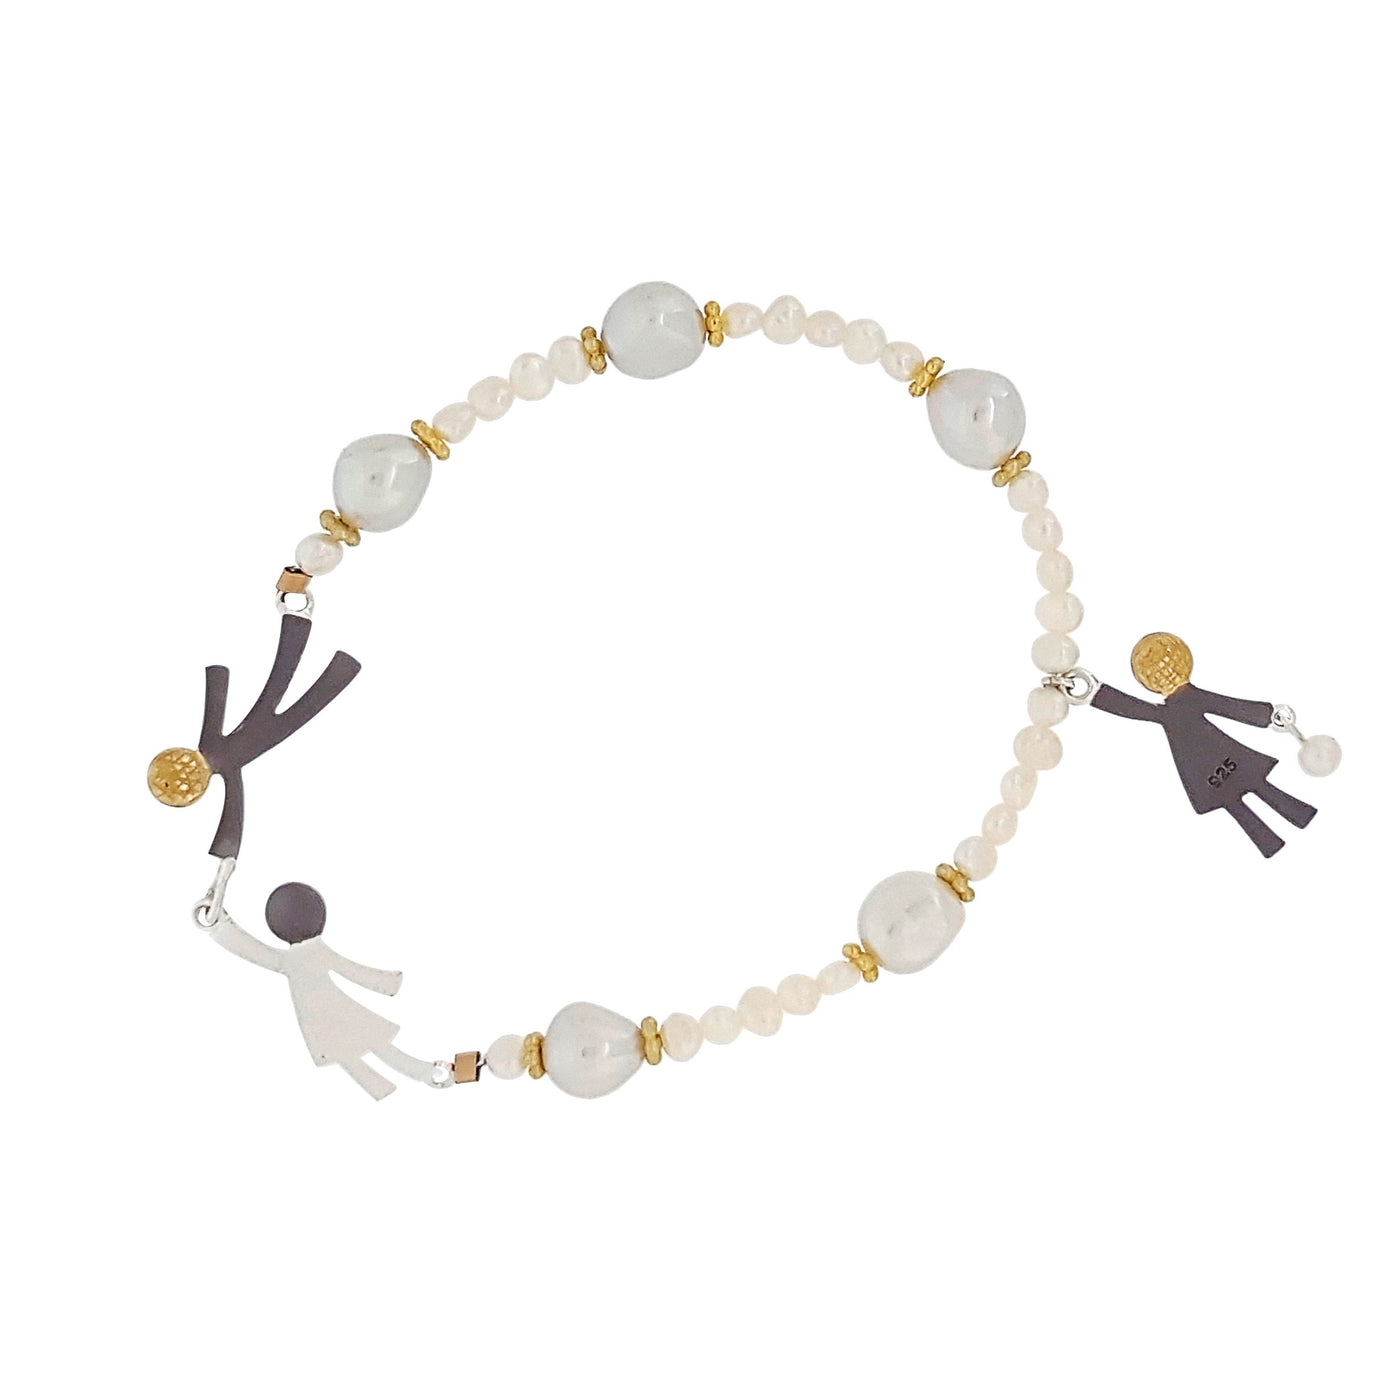 Ruby Bracelets 'Playing Amongst Daisies' - The Courthouse Collection